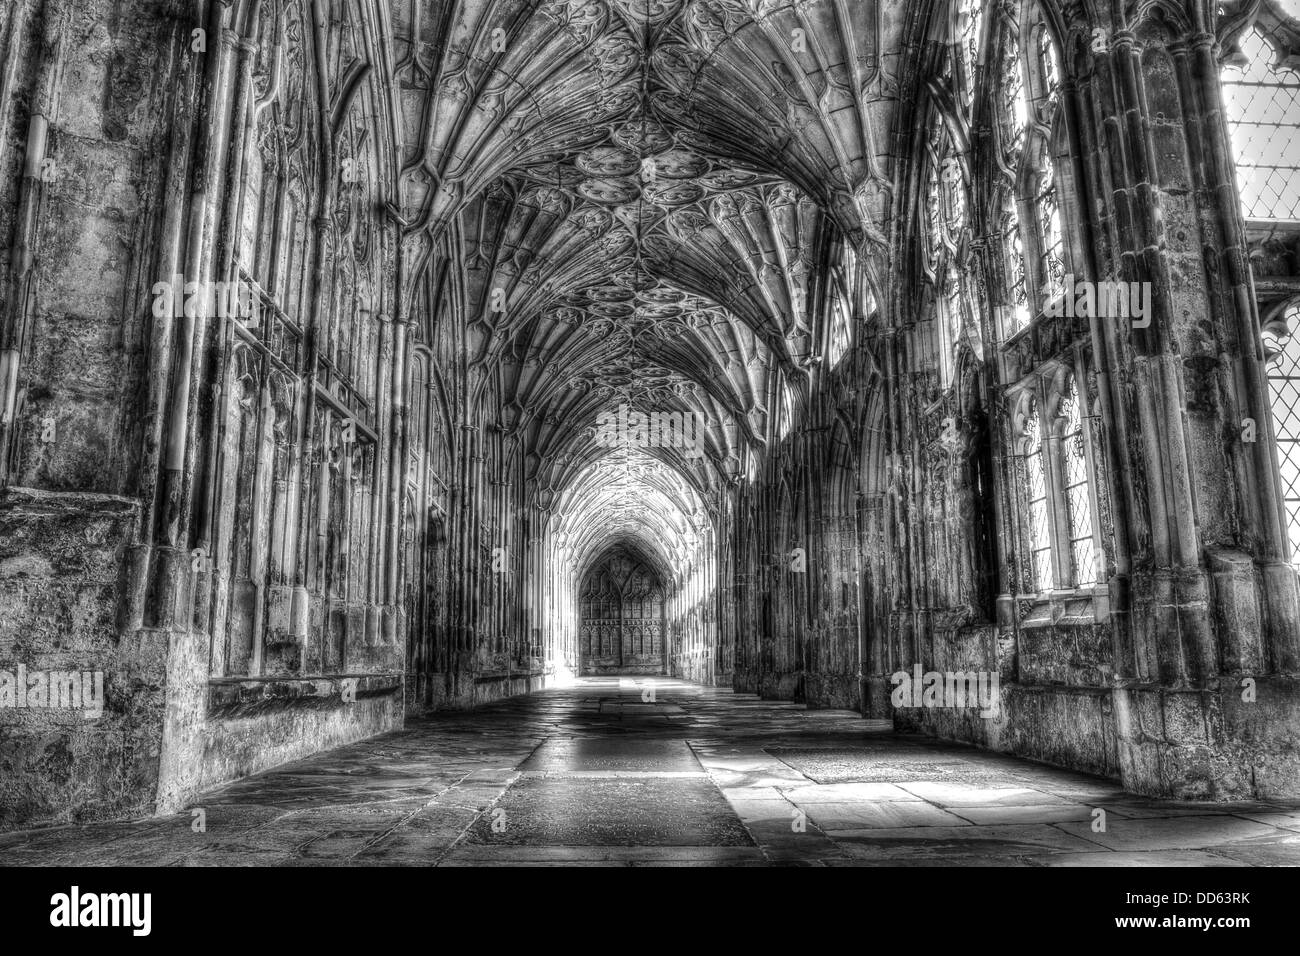 Cloisters at Gloucester Cathedral Black & White - Stock Image